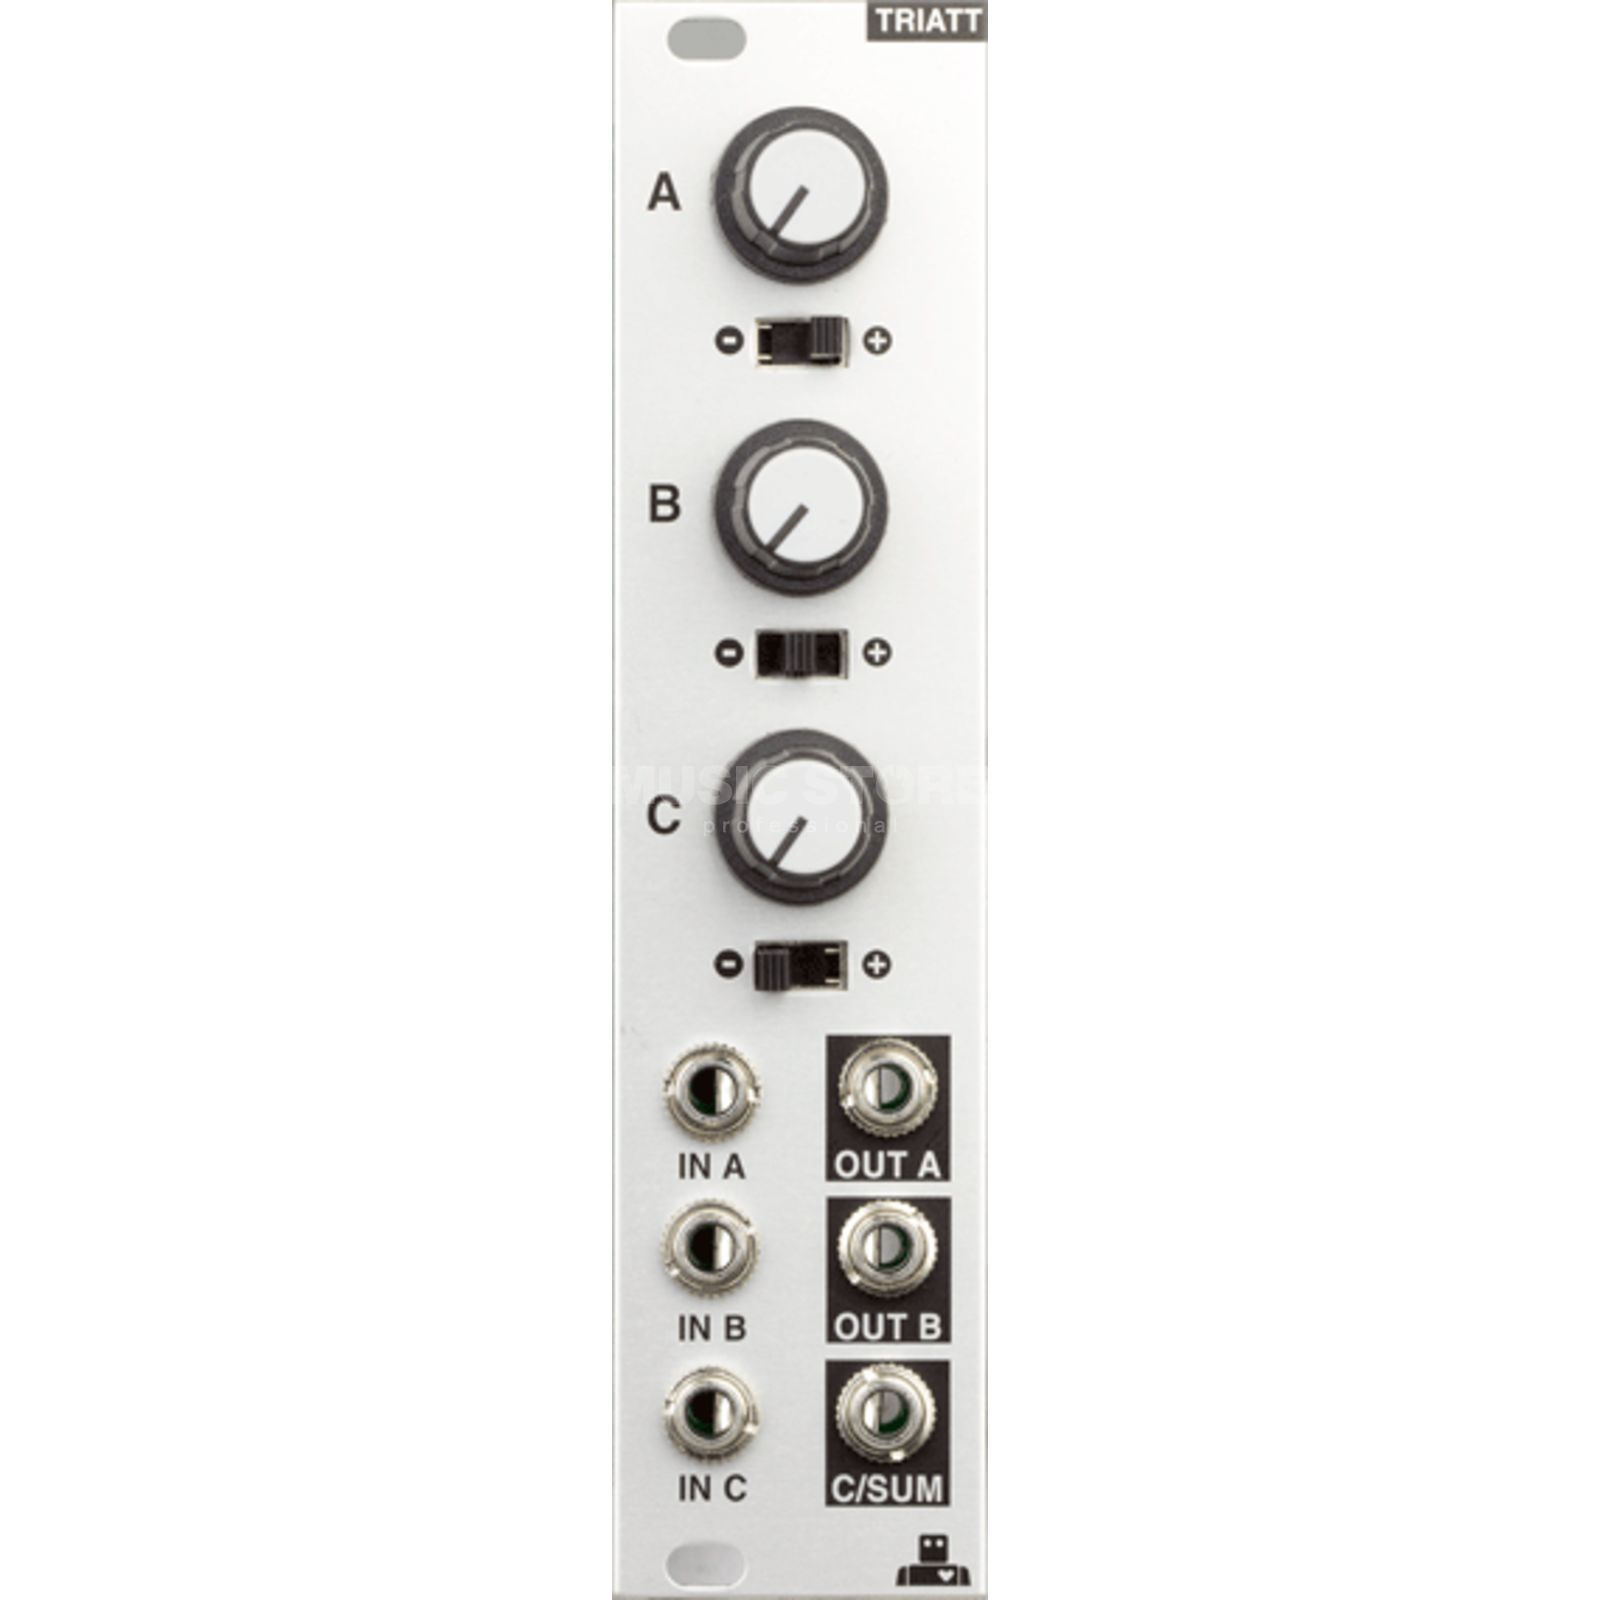 Intellijel Triatt Produktbild